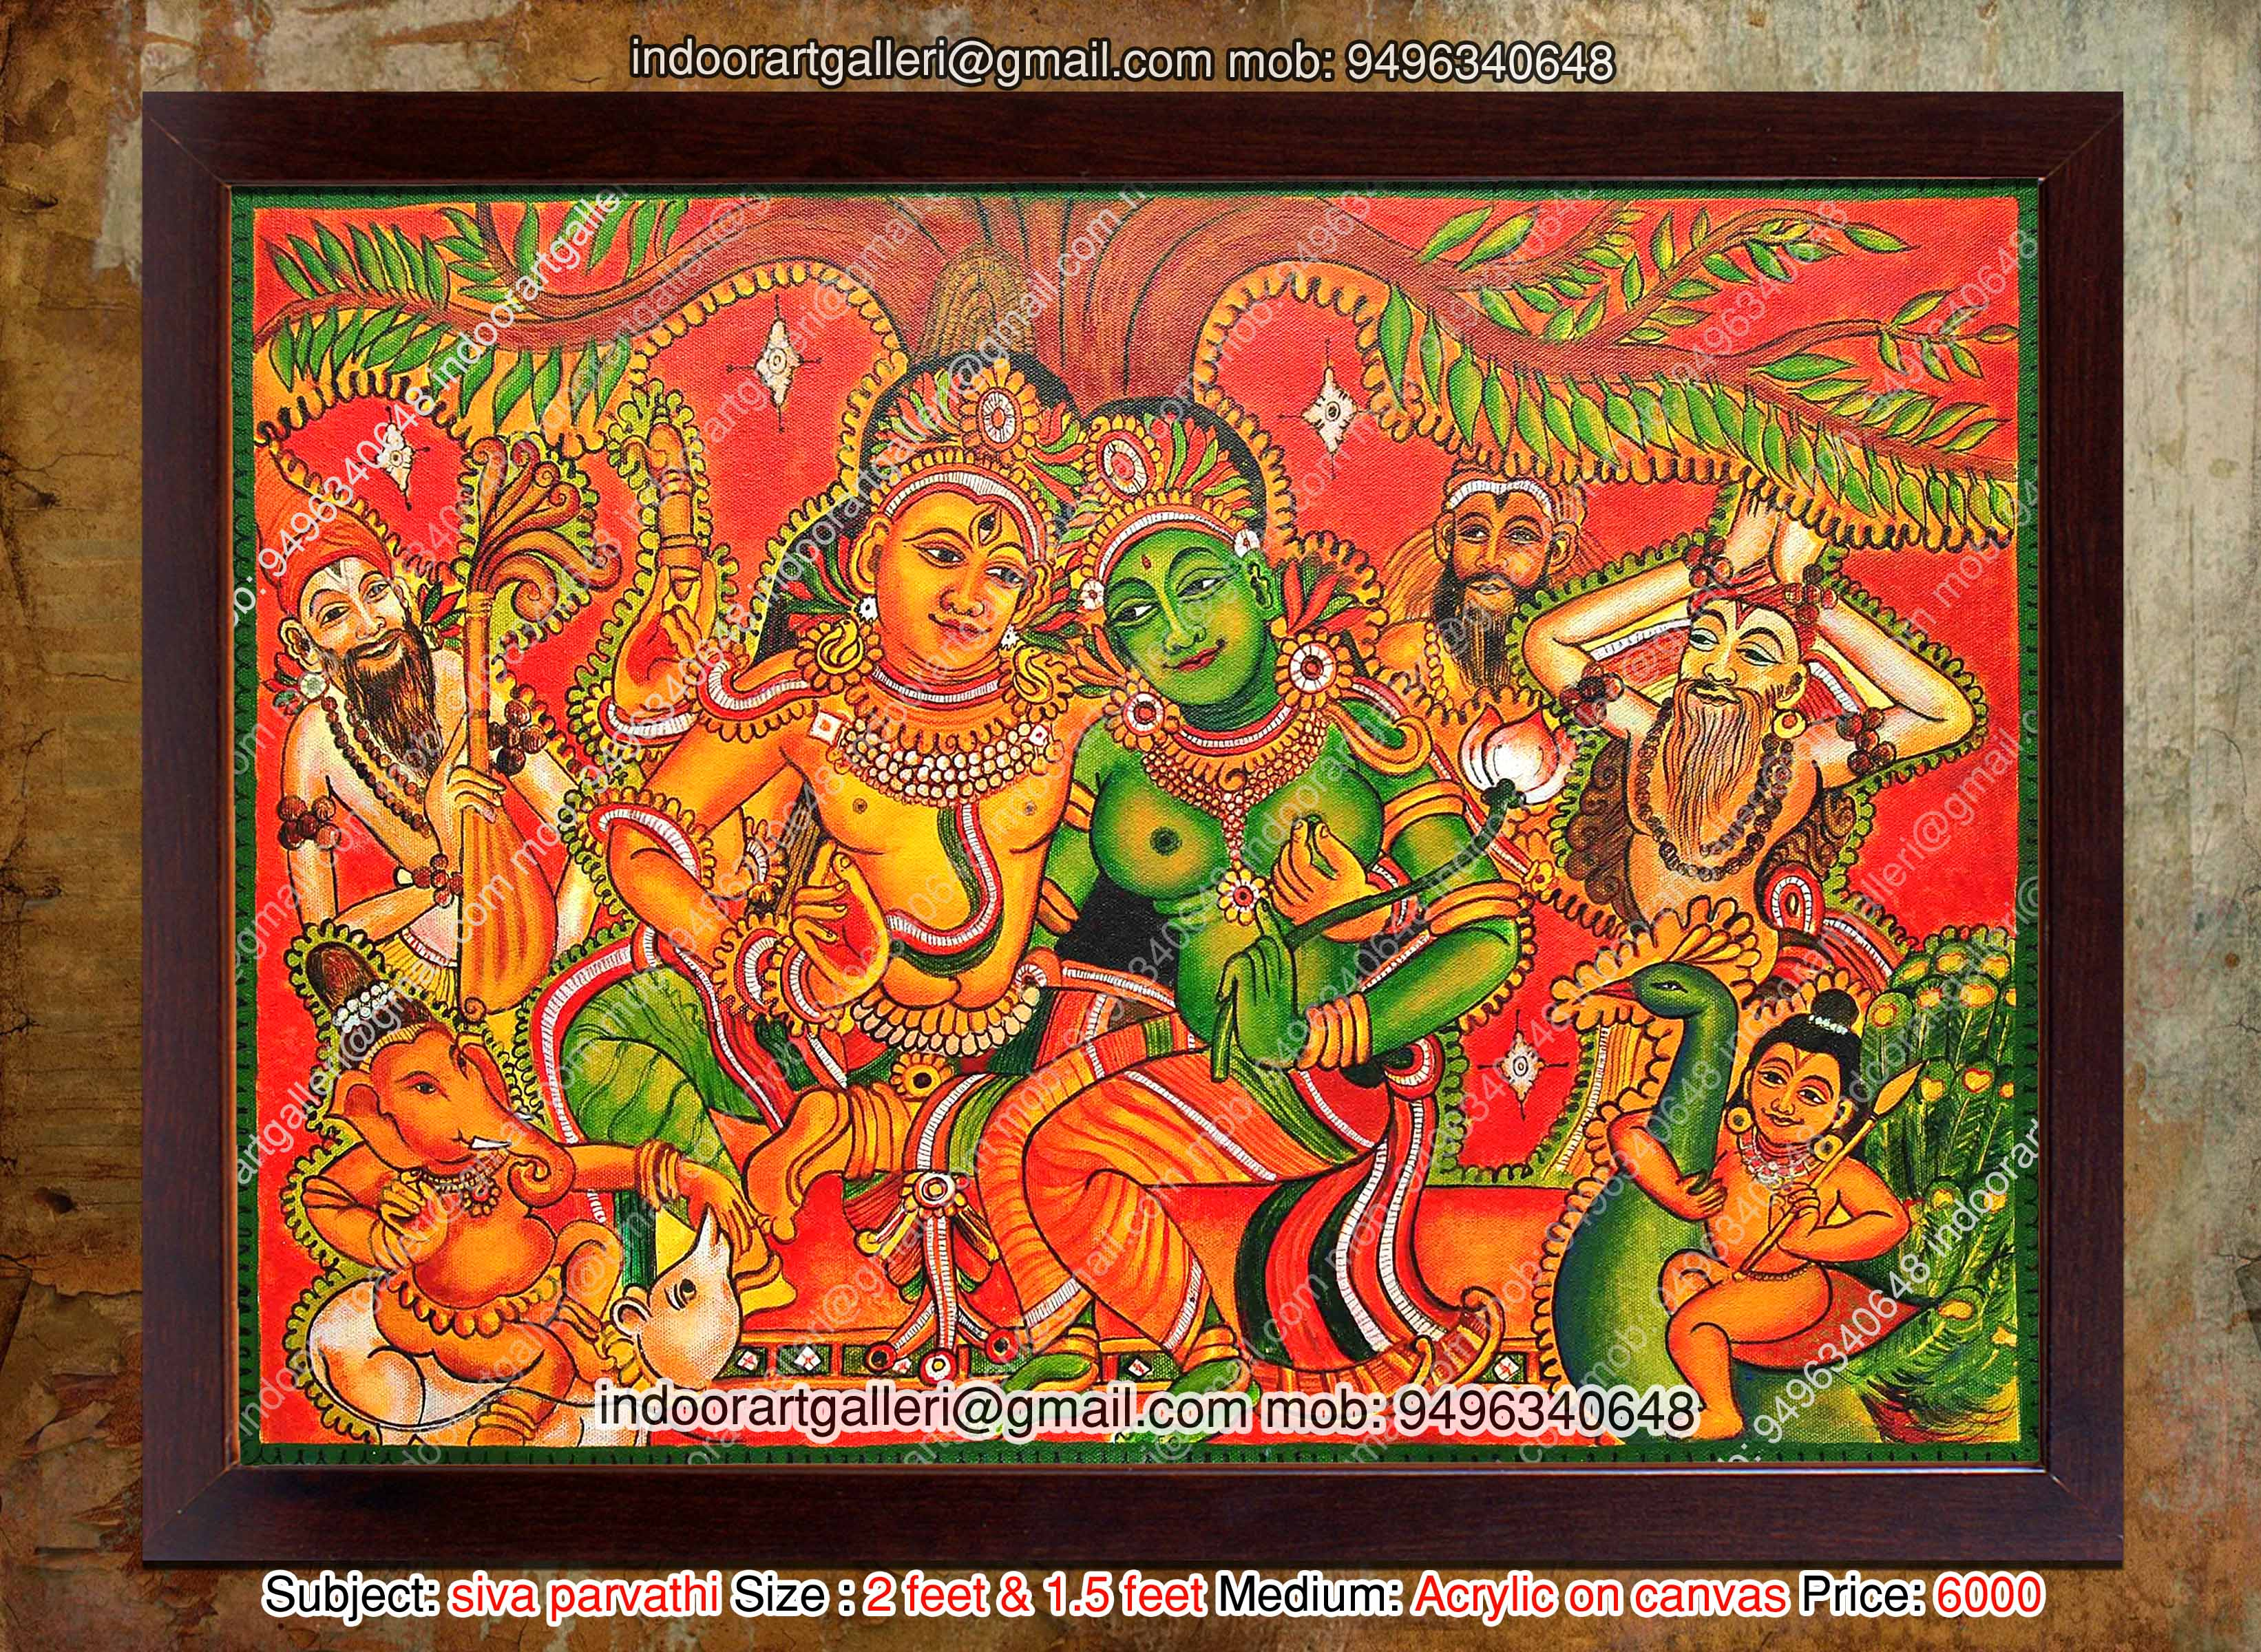 Siva parvathi mural painting by indoorartgalleri on deviantart for Canvas mural painting